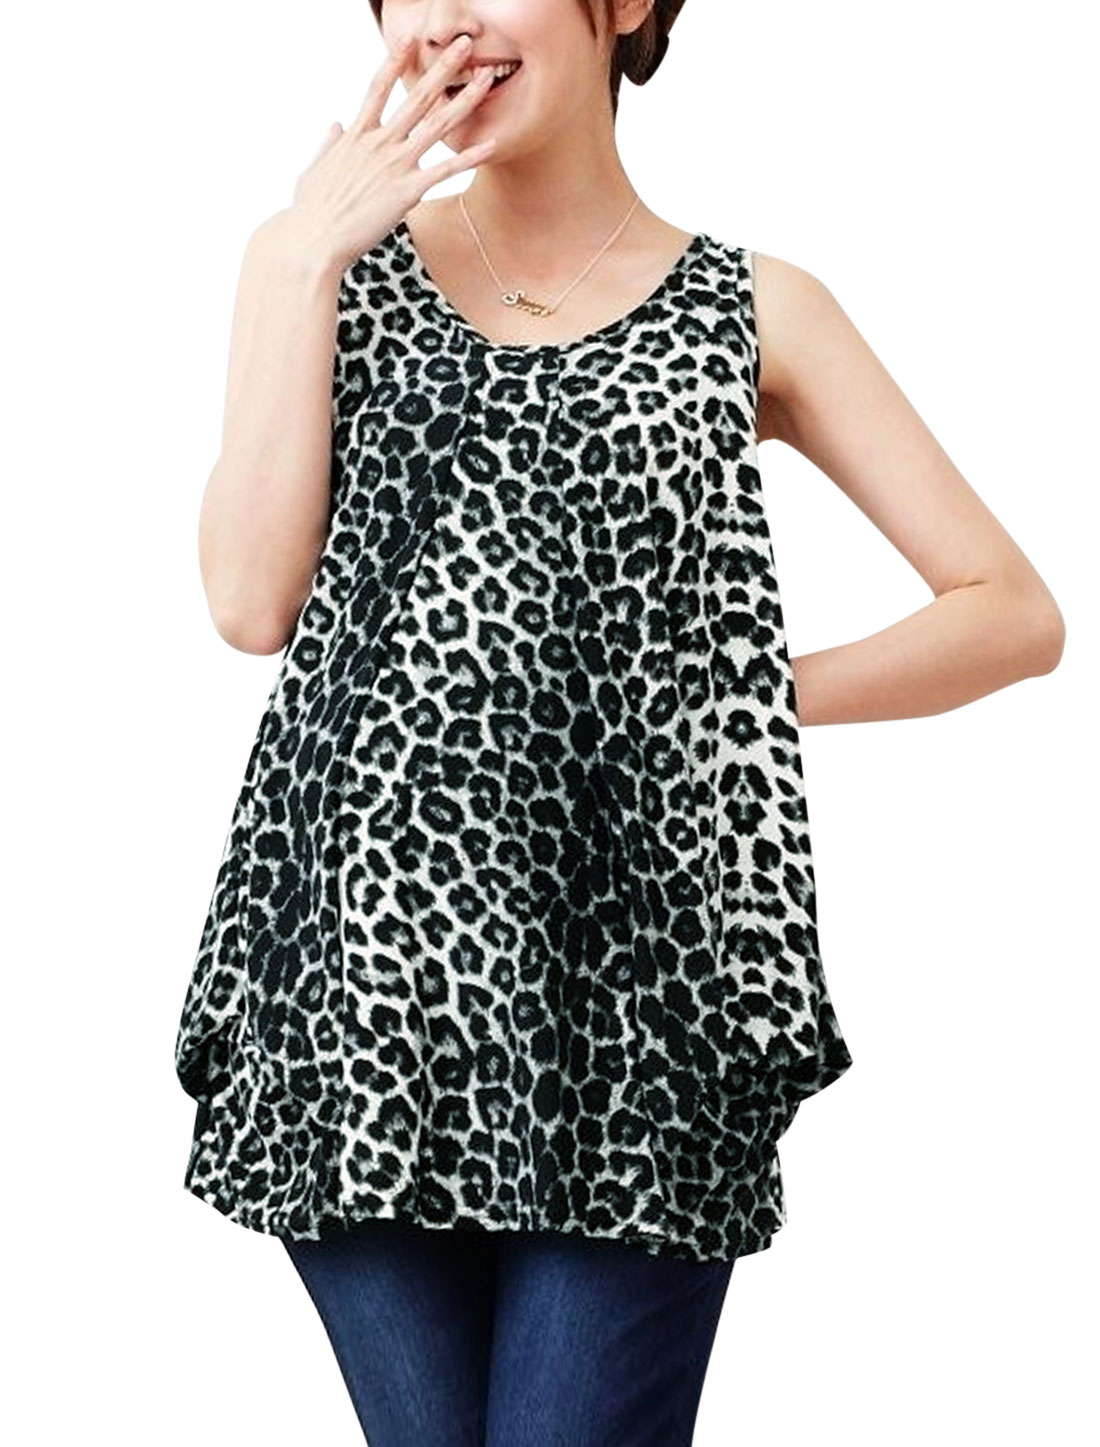 Maternity Leisure Sleeveless Ruched Detail Leopard Prints Blouse Black M